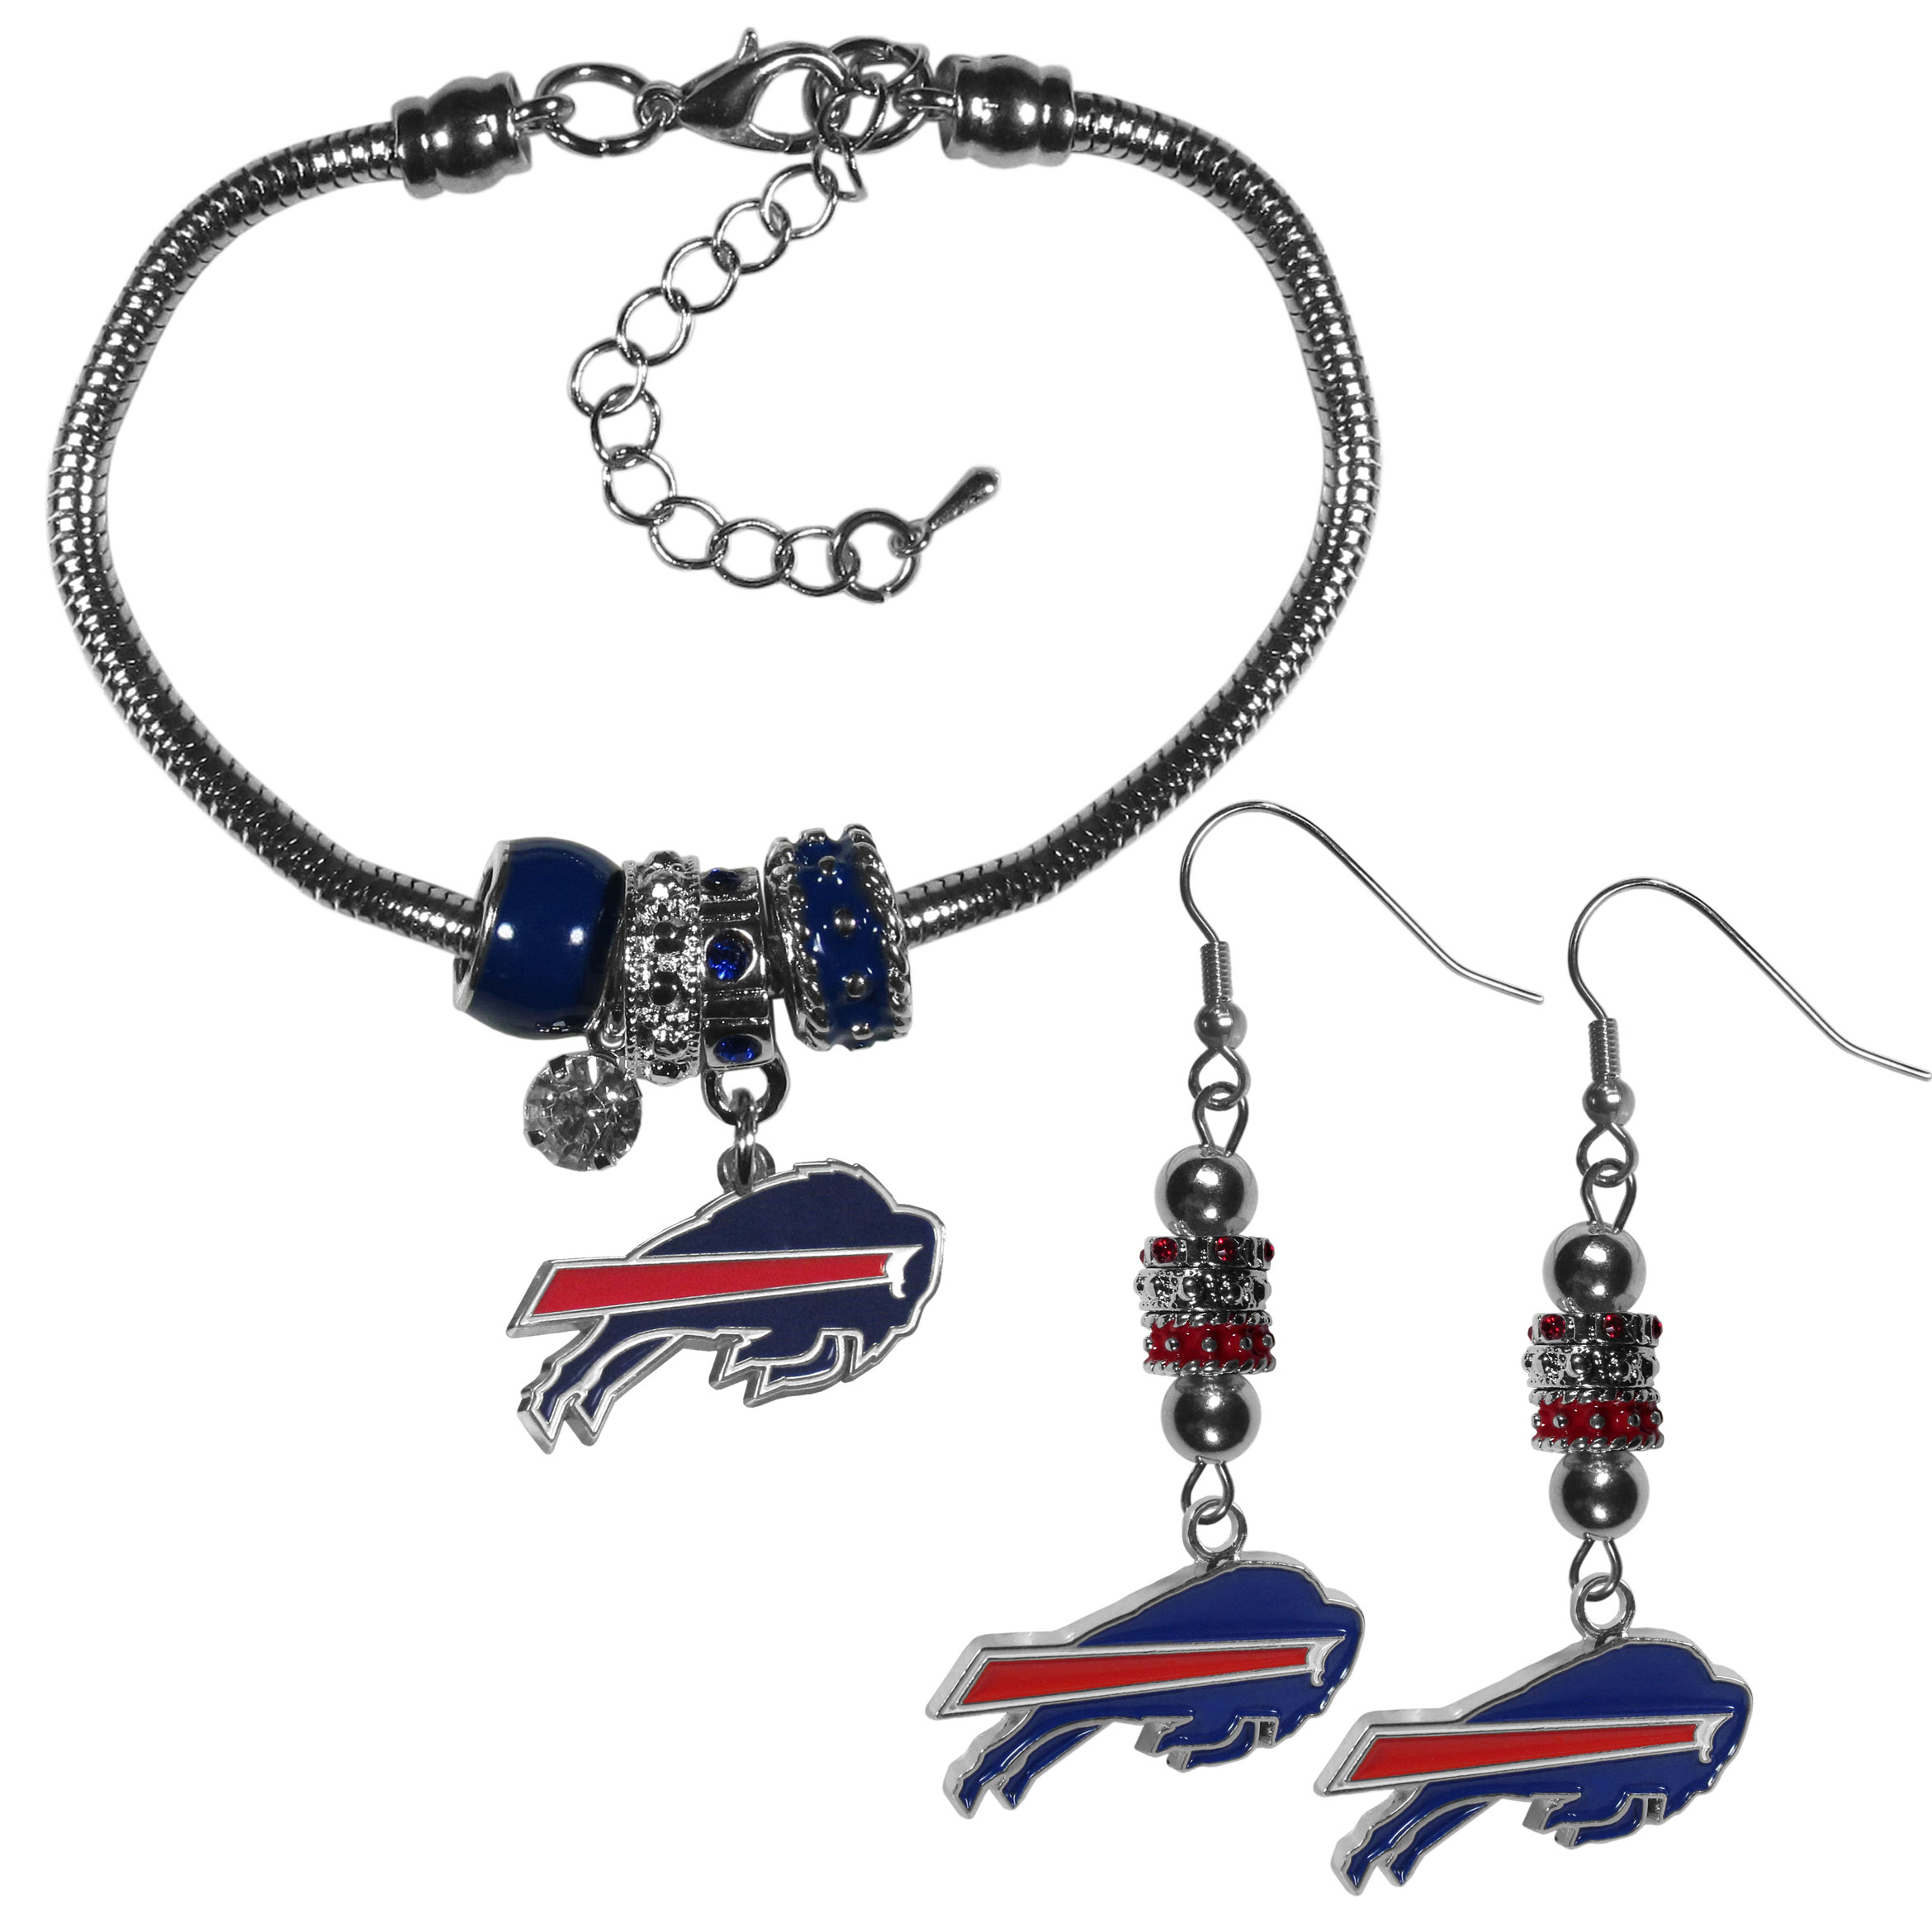 Buffalo Bills Euro Bead Earrings and Bracelet Set - We combine the popular Euro bead style with your love of the Buffalo Bills with this beautiful jewelry set that includes earrings and a matching bracelet. The stylish earrings feature hypoallergenic, nickel free fishhook posts and 3 team colored Euro beads and a metal team charm. The matching snake chain bracelet is 7.5 inches long with a 2 inch extender and 4 Euro beads with a rhinestone charm and team charm.